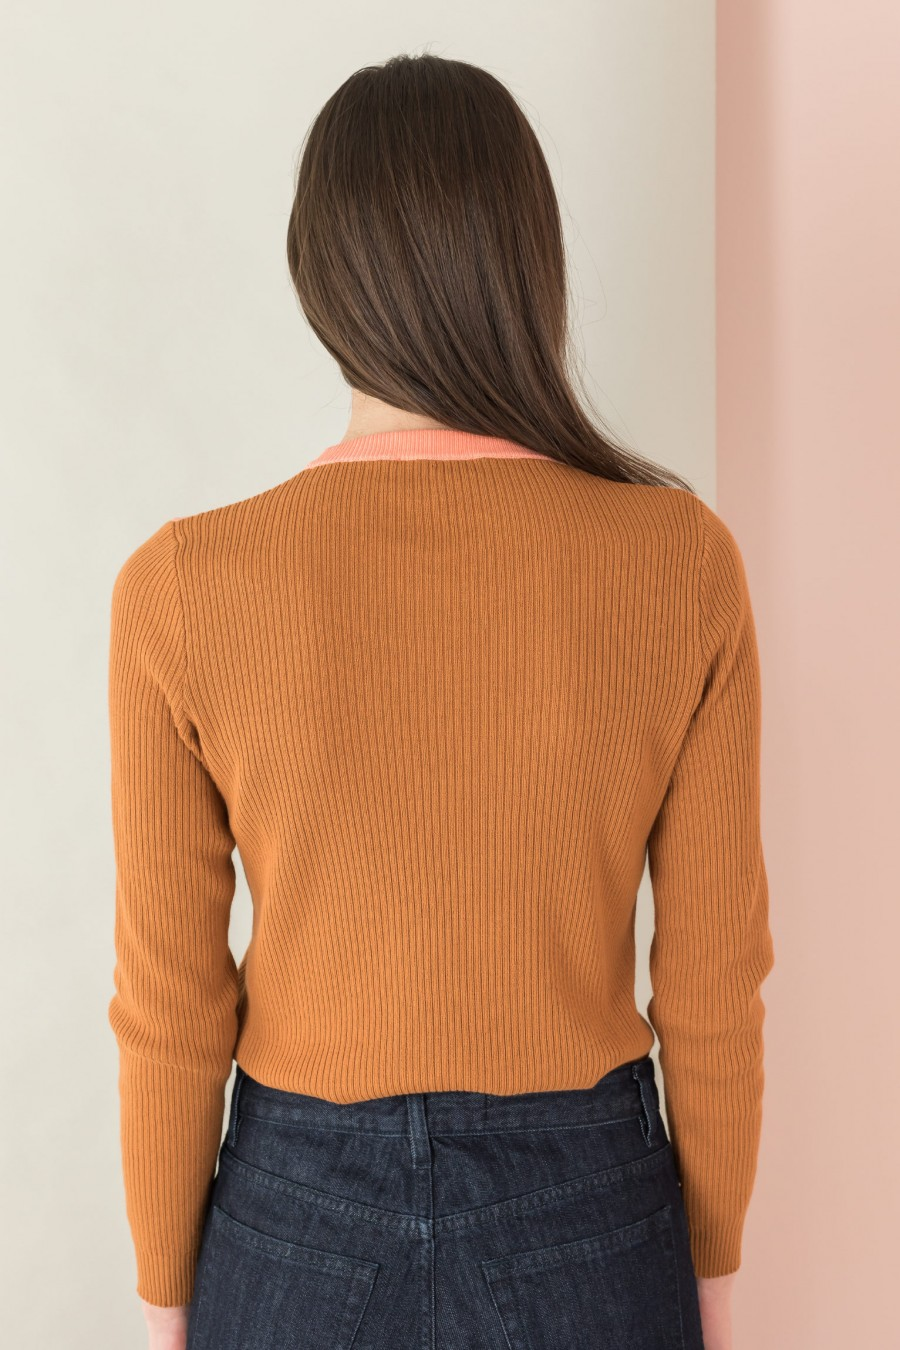 biscuit-colored sweater